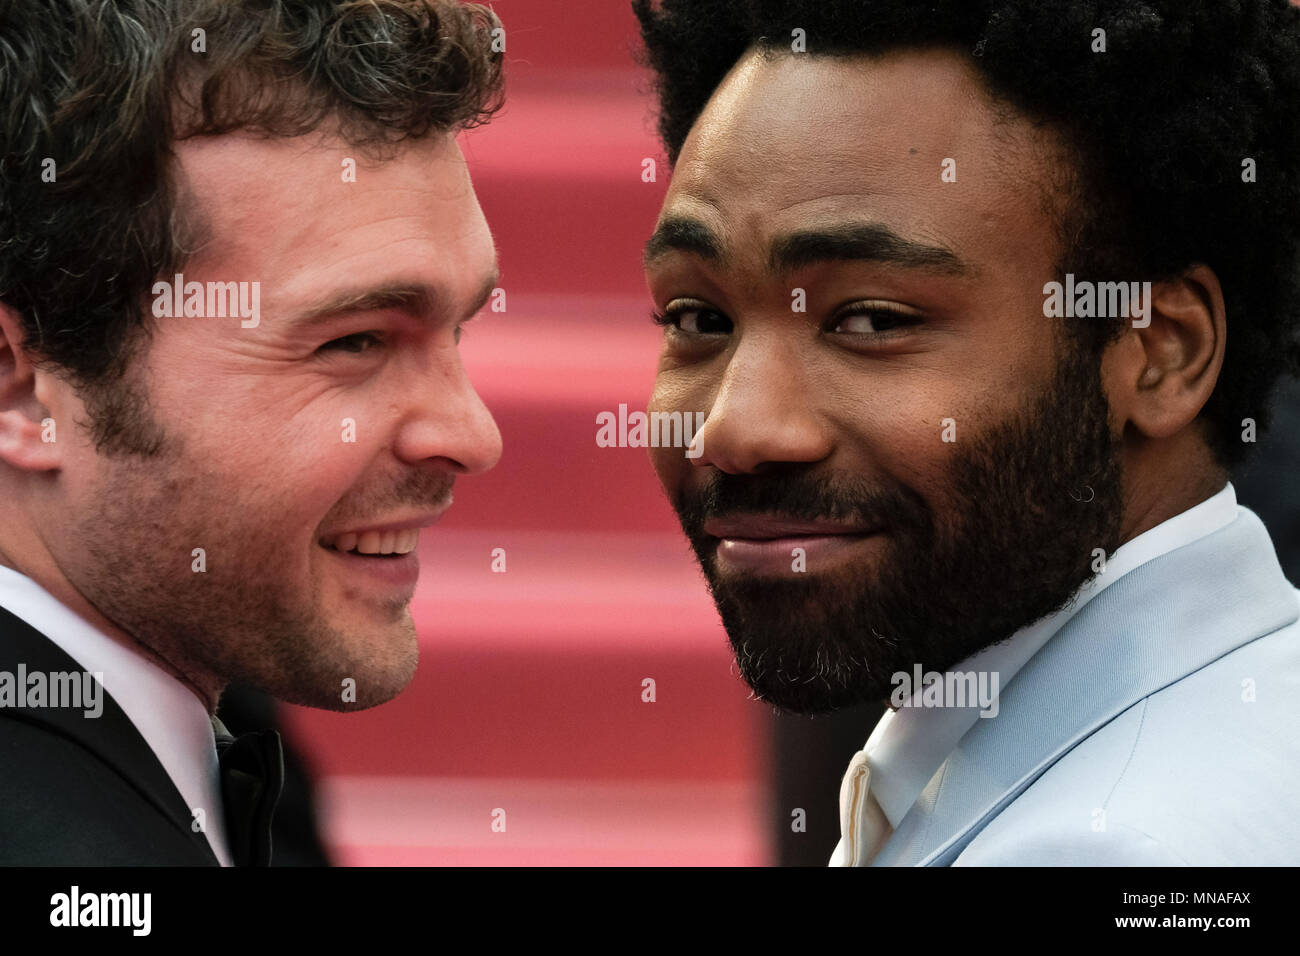 Cannes, France. 15th May 2018. Alden Ehrenreich and Donald Glover on the 'Solo : A Star Wars Story' Red Carpet on Tuesday 15 May 2018 as part of the 71st International Cannes Film Festival held at Palais des Festivals, Cannes. Pictured: Donald Glover. Picture by Julie Edwards. Credit: Julie Edwards/Alamy Live News - Stock Image